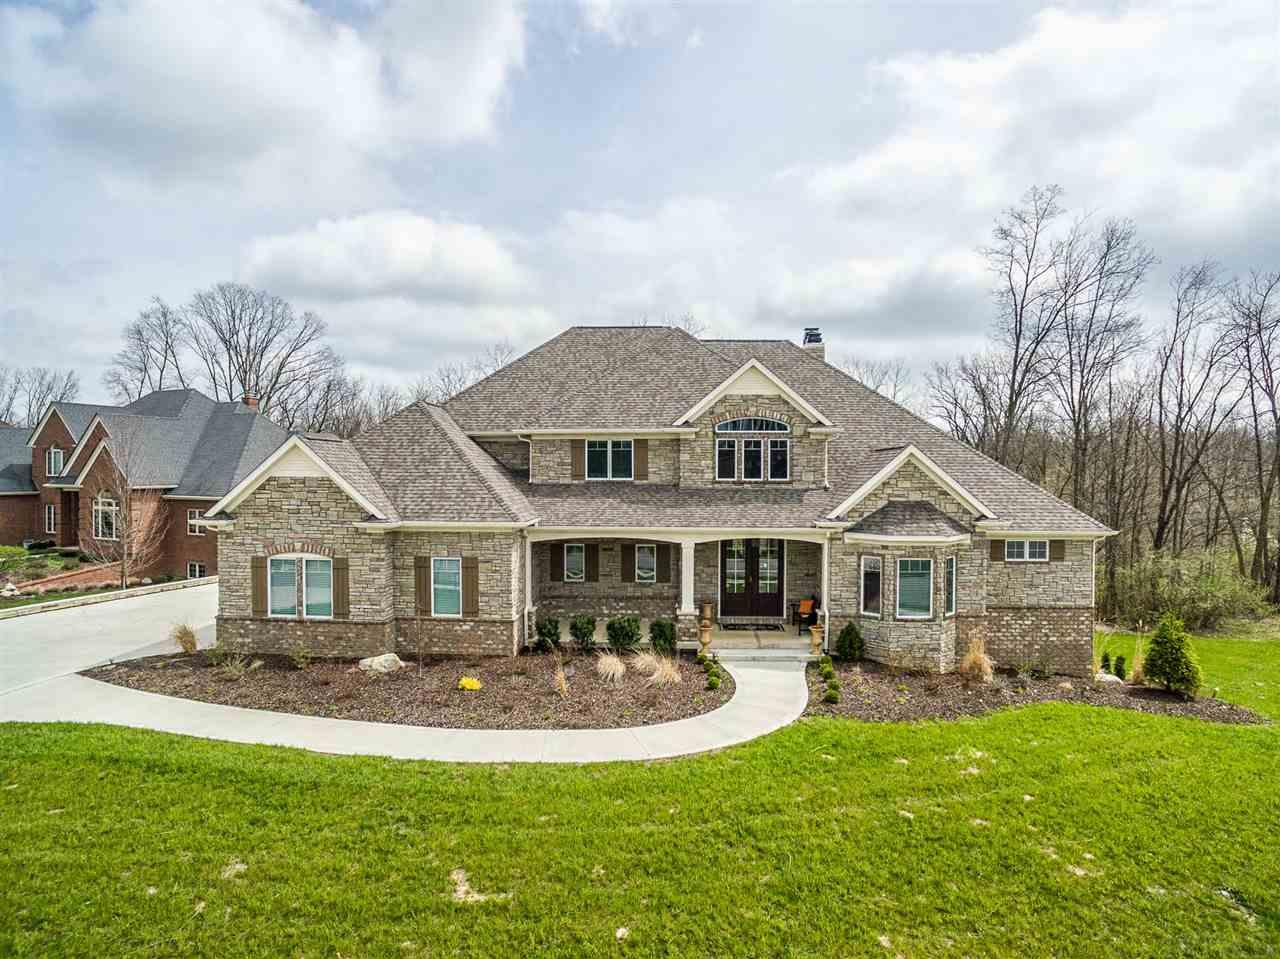 4025 Cantwell, Fort Wayne, IN 46814